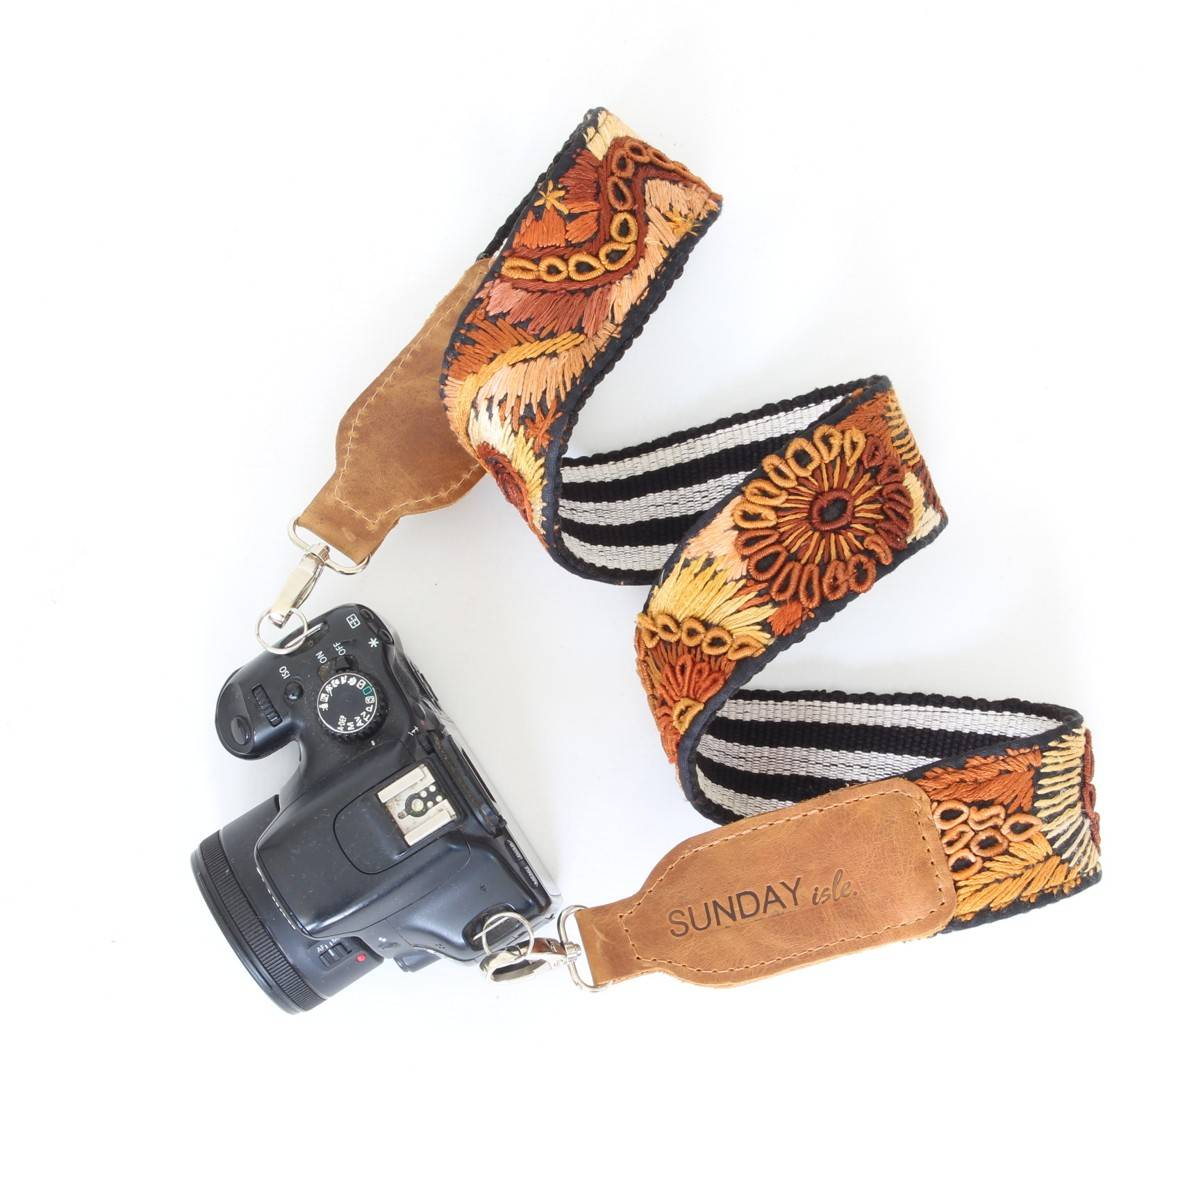 embroidery and leather camera strap